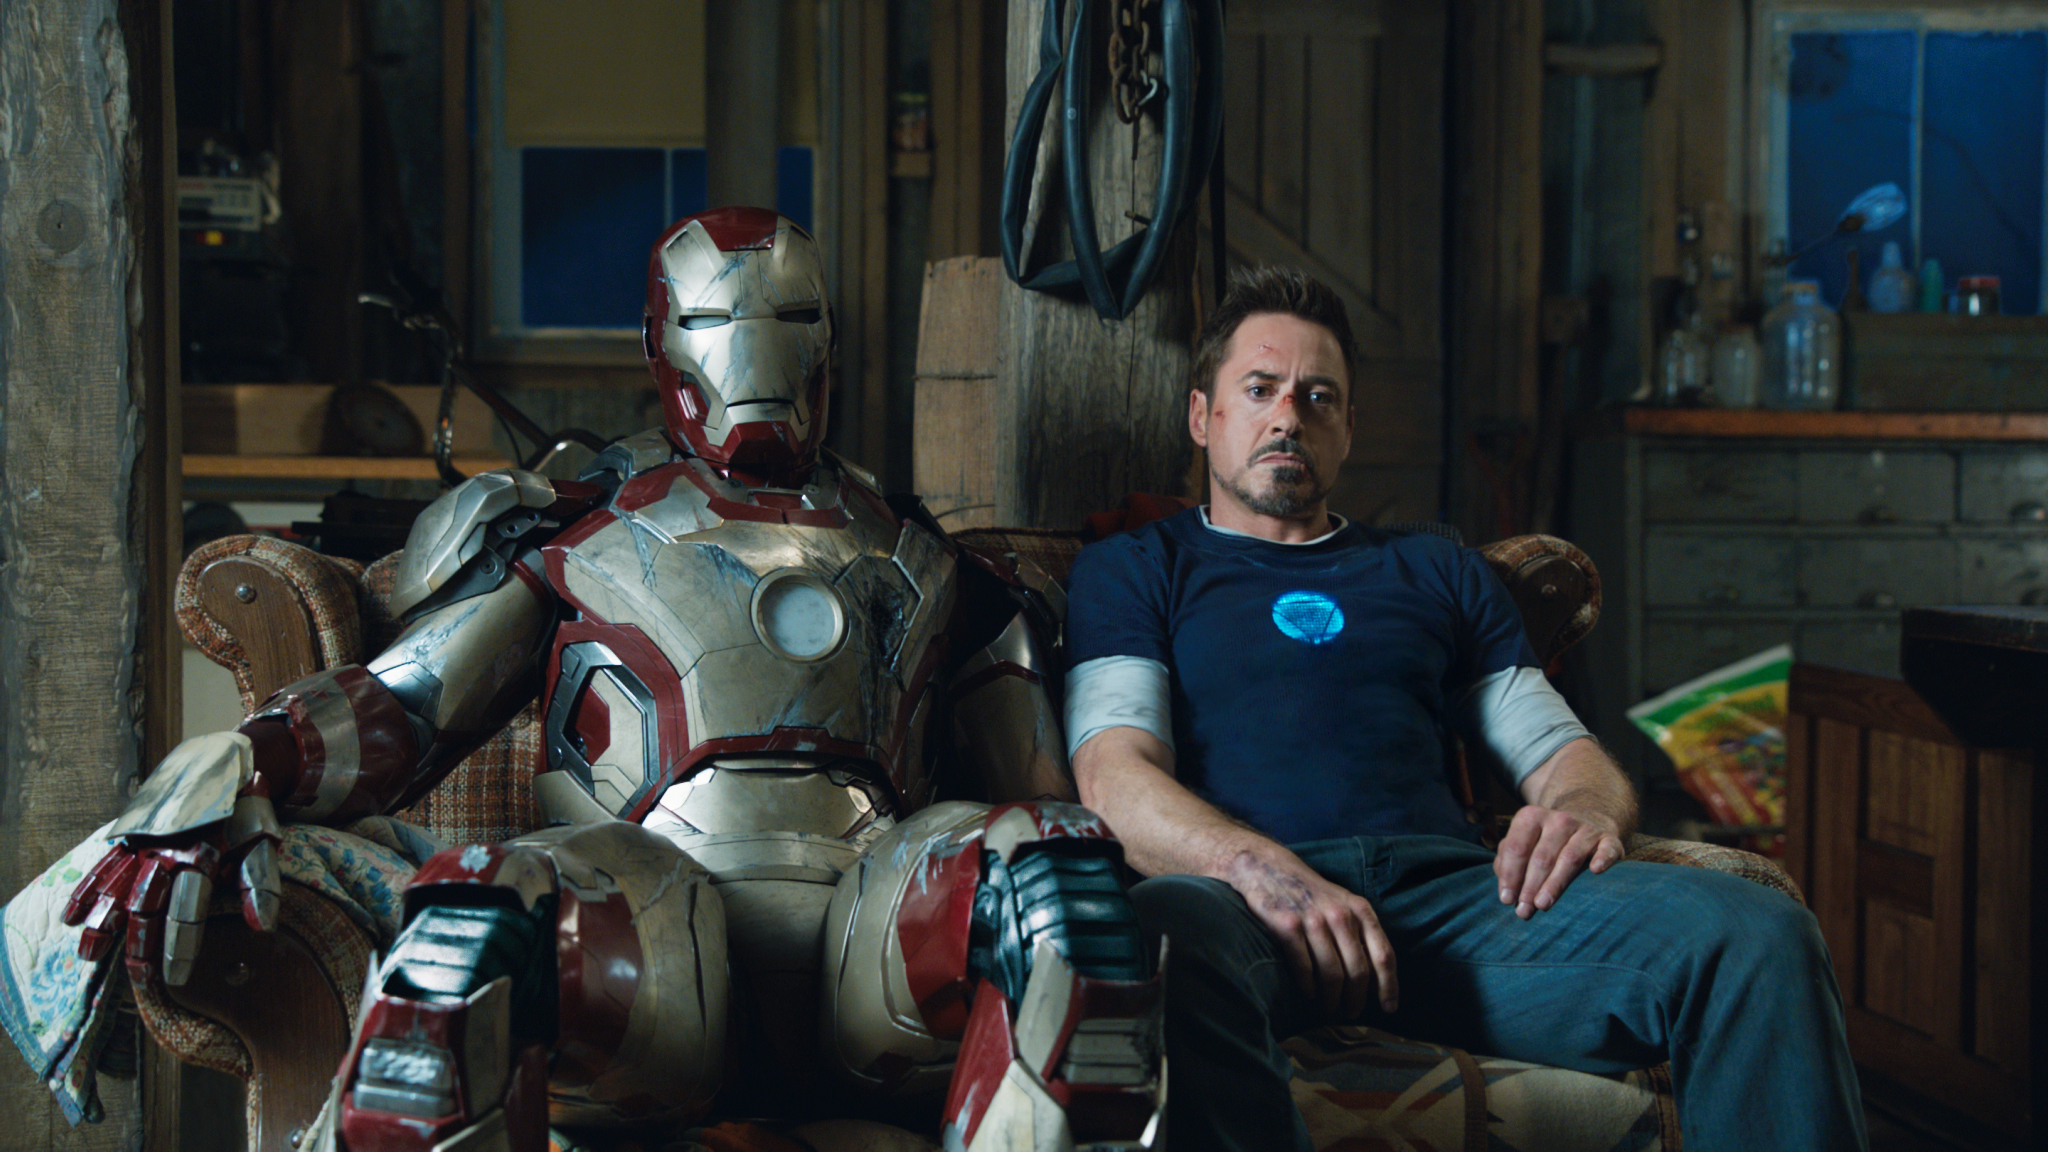 IRON MAN HOUR: Hannah Meets The Mechanic in Iron Man 3 - The Beat